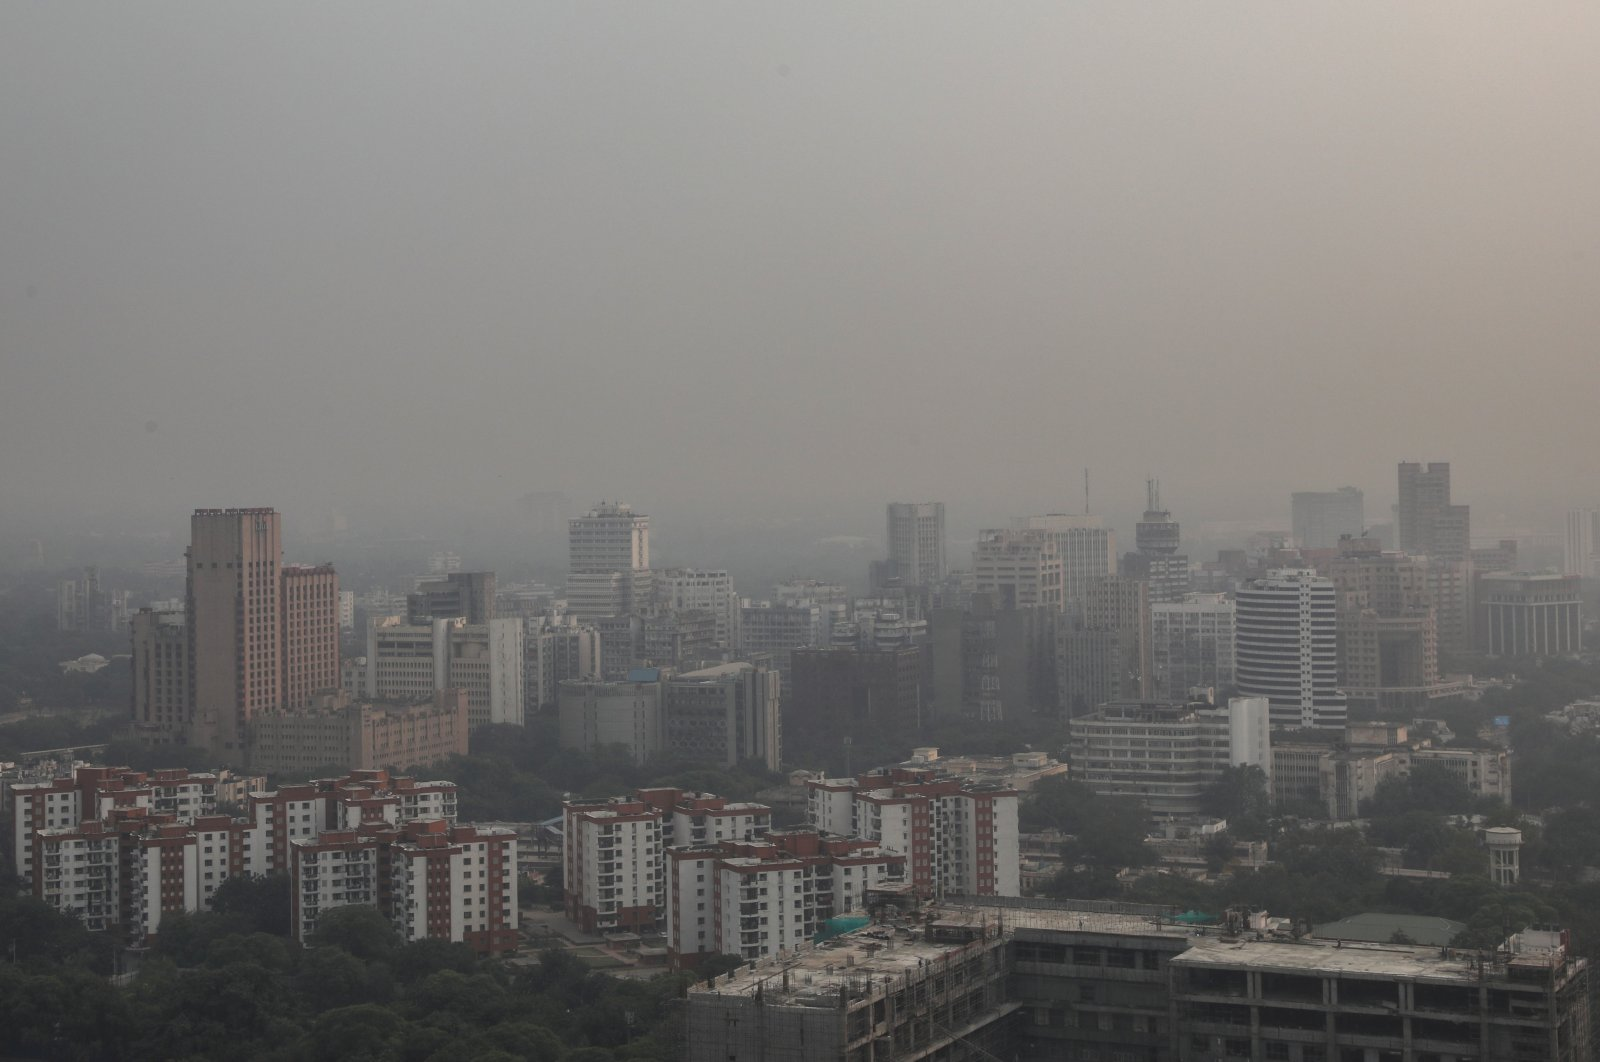 Delhi engulfed in heavy smog, Oct. 22, 2020. (EPA Photo)